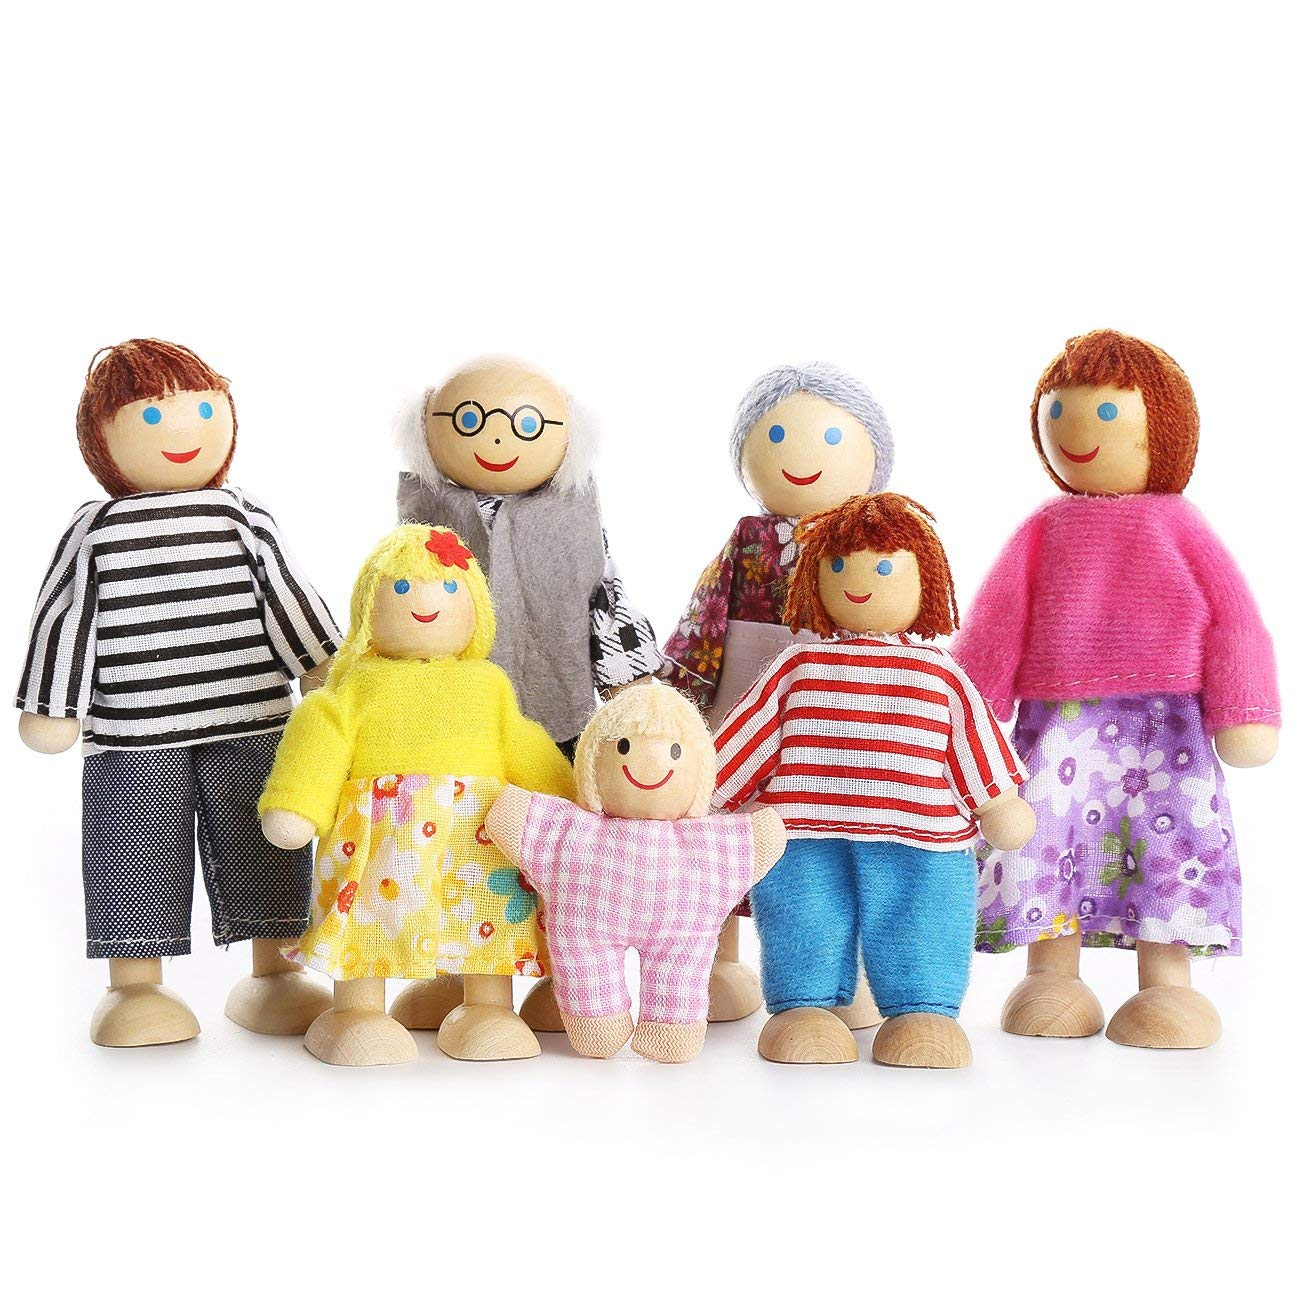 Kids Girls Lovely Happy Dolls Family Playset Wooden Figures Set of 7 People for Children House Pretend Gift image